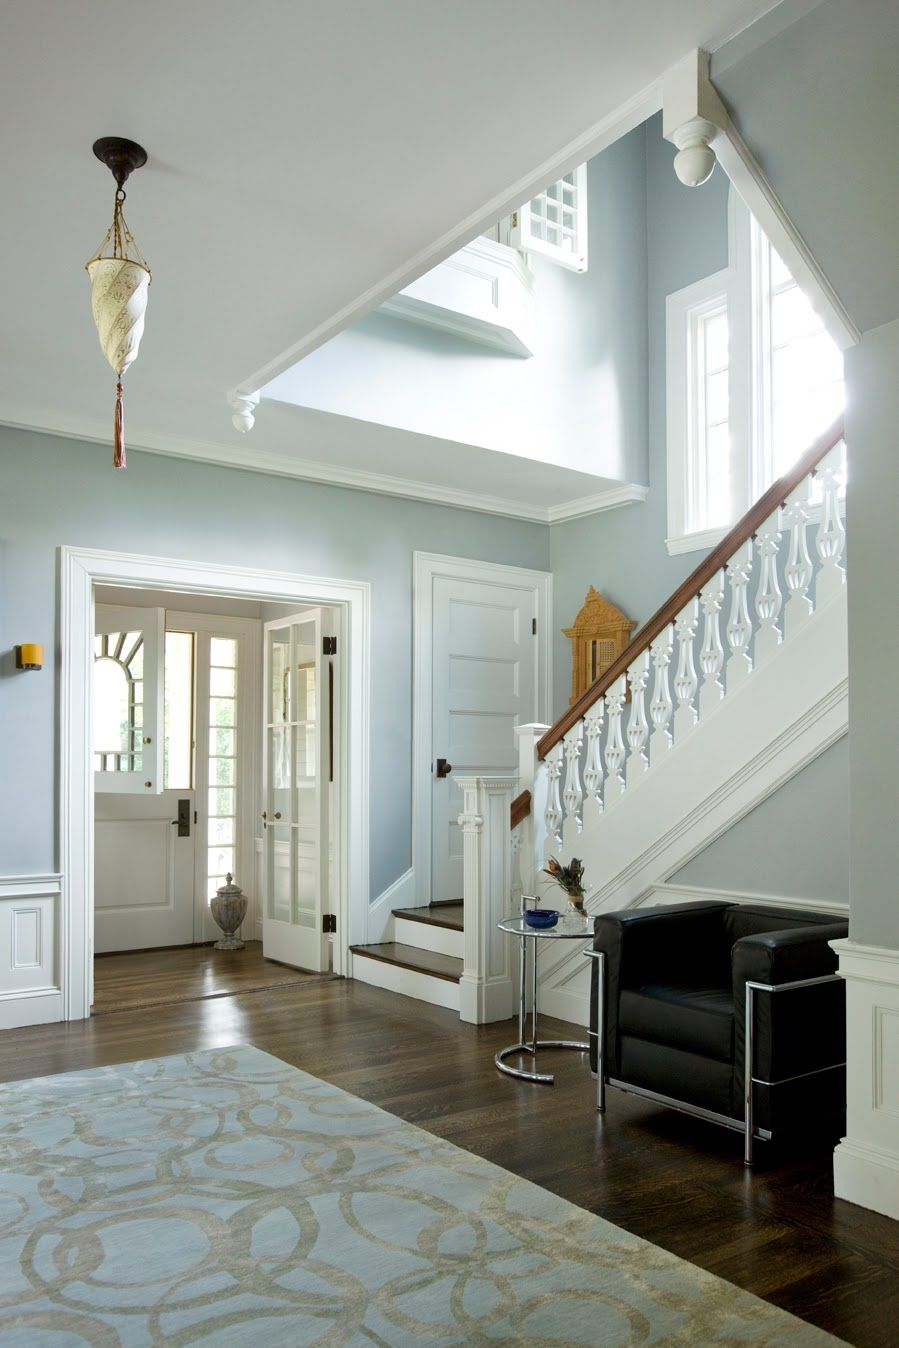 Warm and elegant blue gray rug with platinum rings in eclectic foyer area. LDa Architecture & Interiors: May 2010.